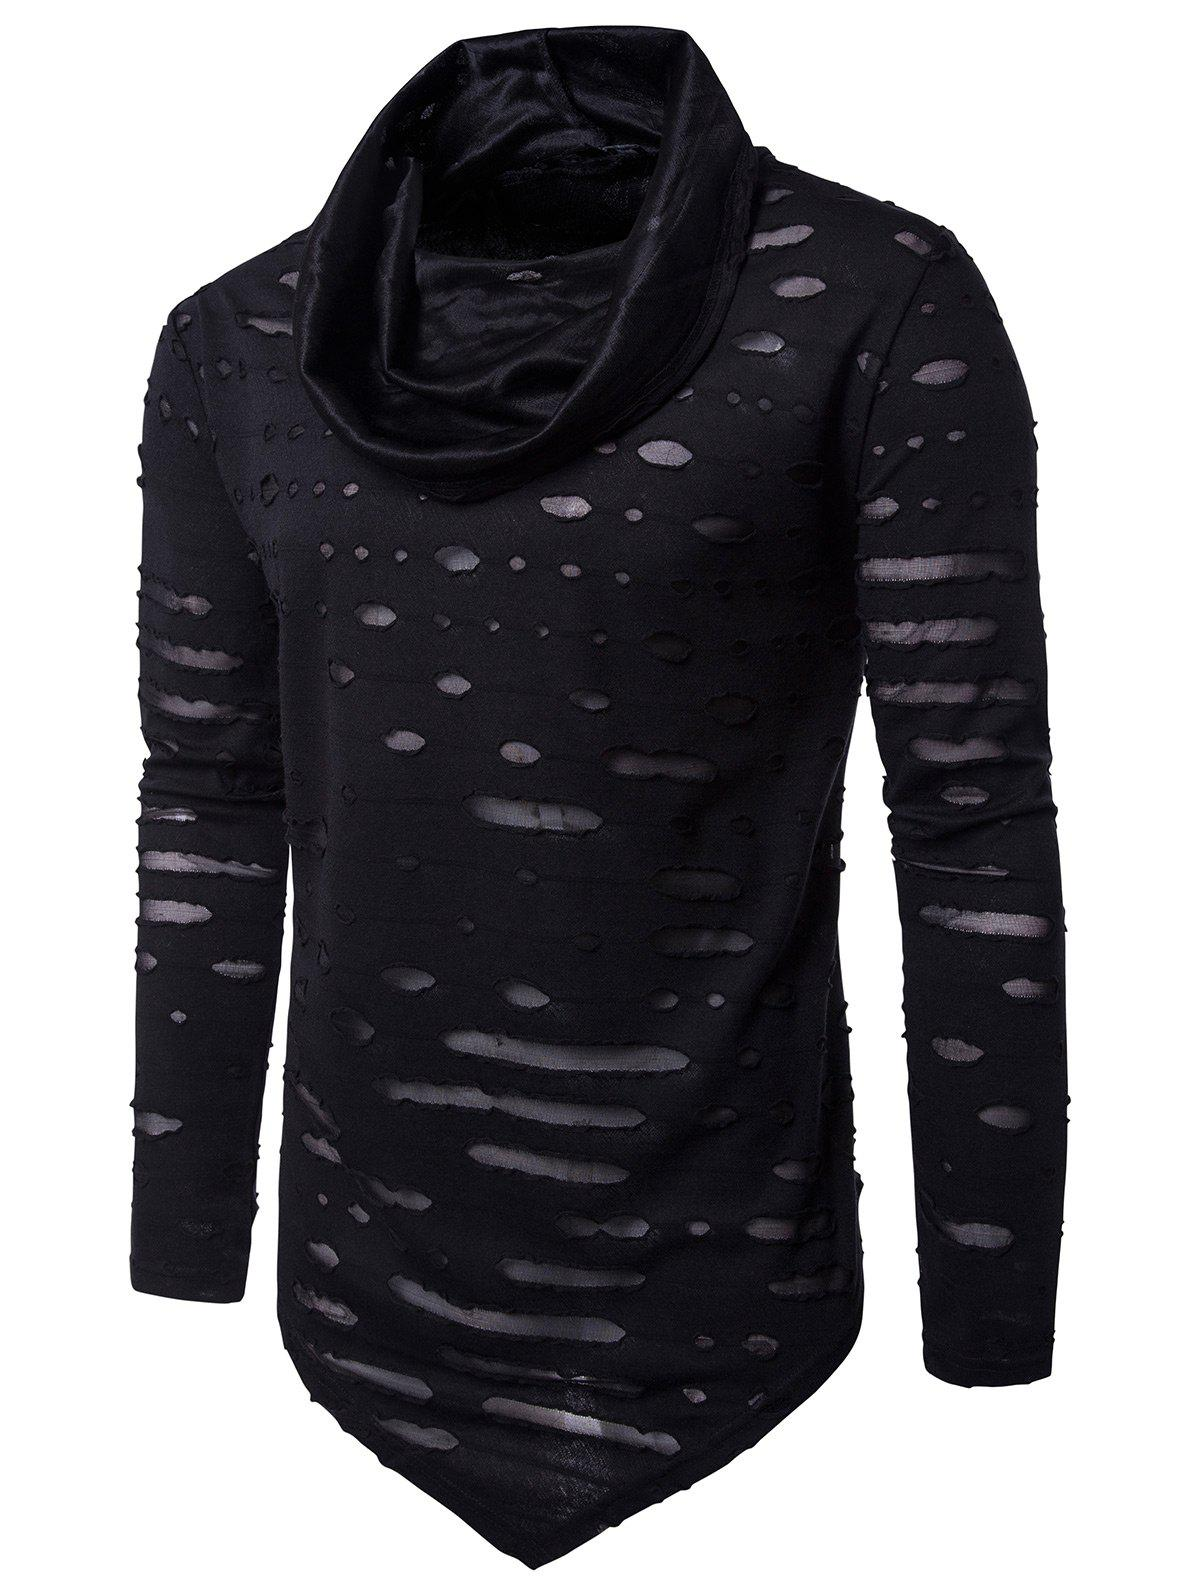 Distressed Triangle Bottom Asymmetric T-shirtMEN<br><br>Size: M; Color: BLACK; Material: Cotton,Polyester; Sleeve Length: Full; Collar: Cowl Neck; Style: Fashion,Punk,Rock; Embellishment: Hole; Pattern Type: Solid; Weight: 0.2935kg; Package Contents: 1 x T-shirt;